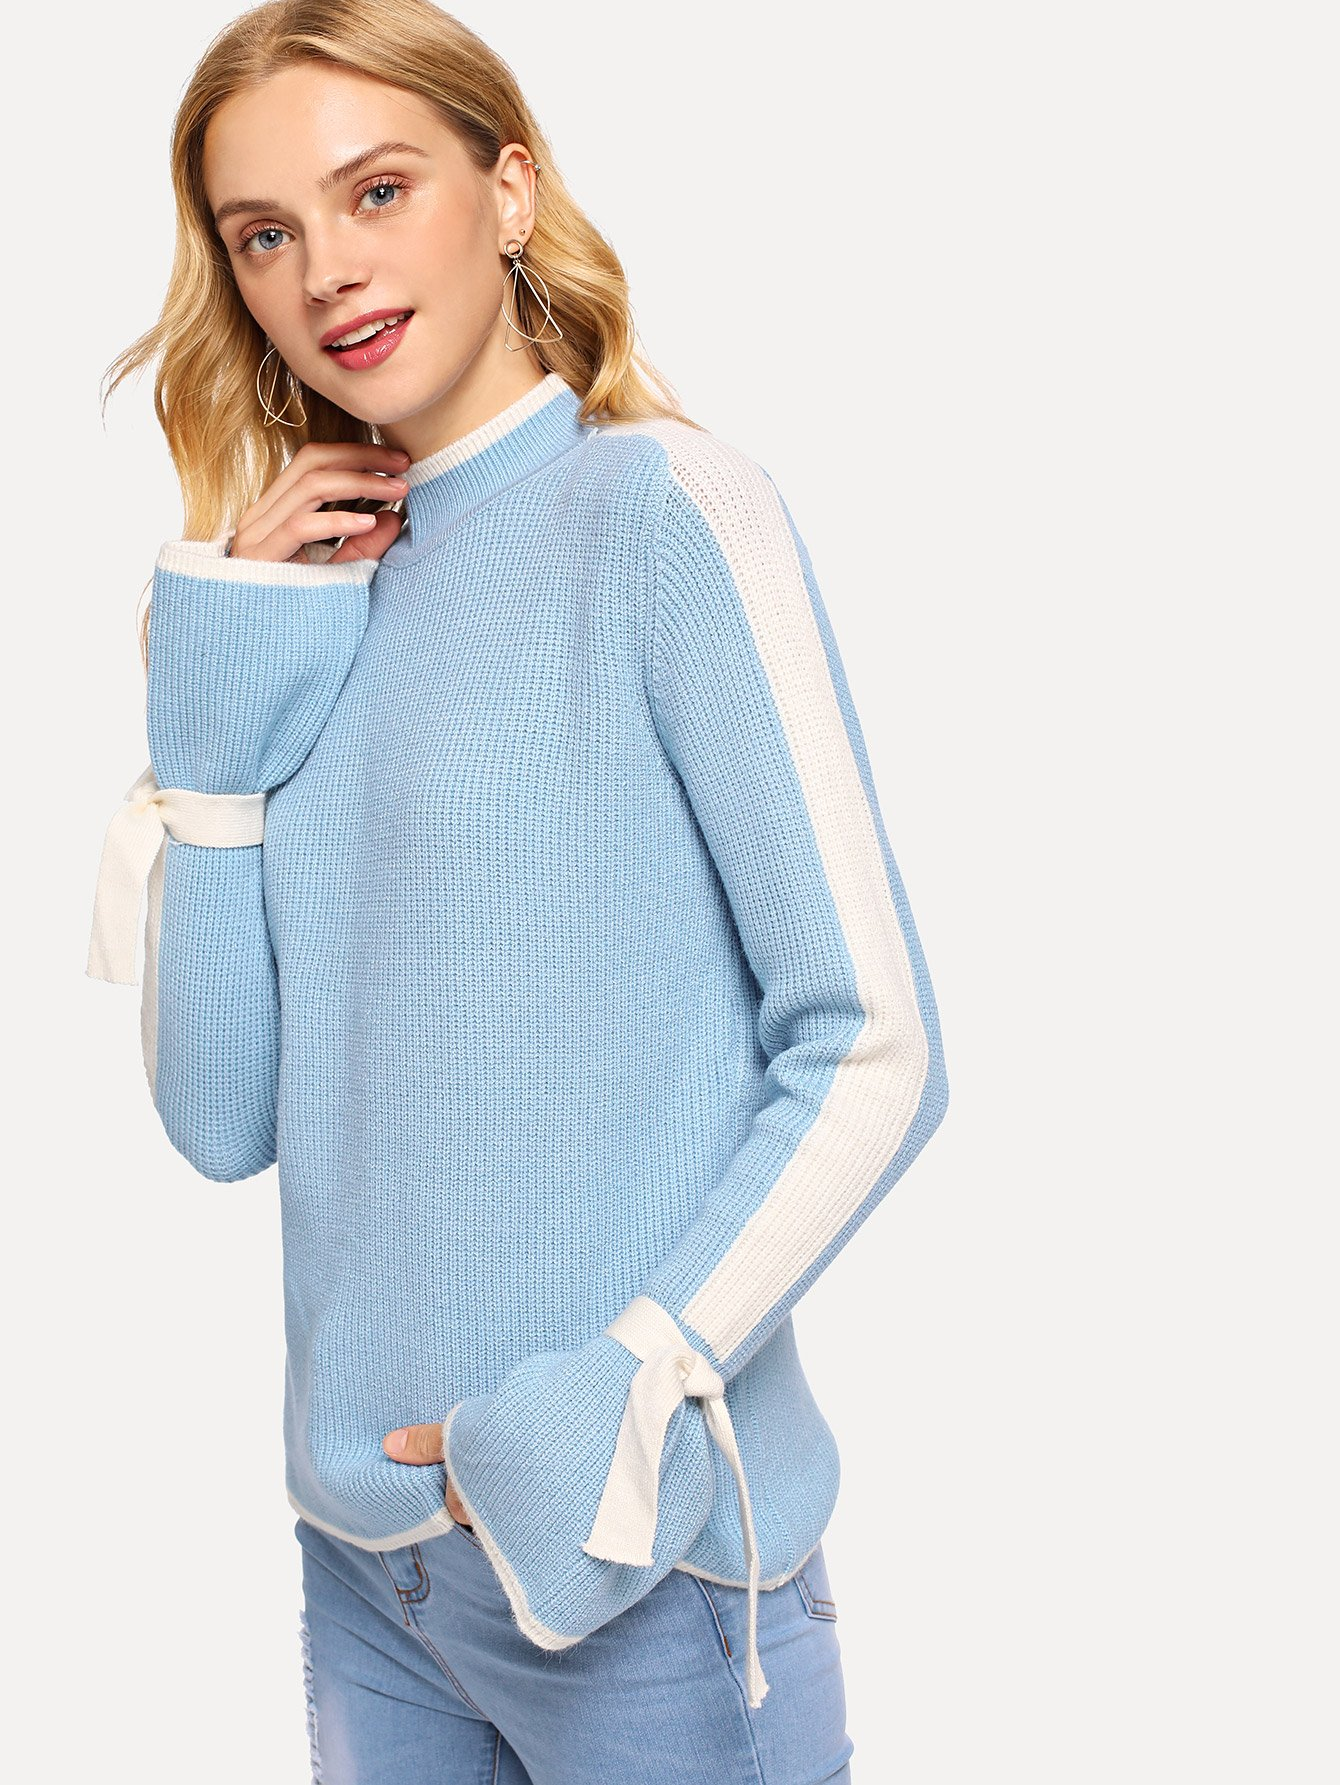 Contrast Panel Sleeve Knot Cuff Sweater